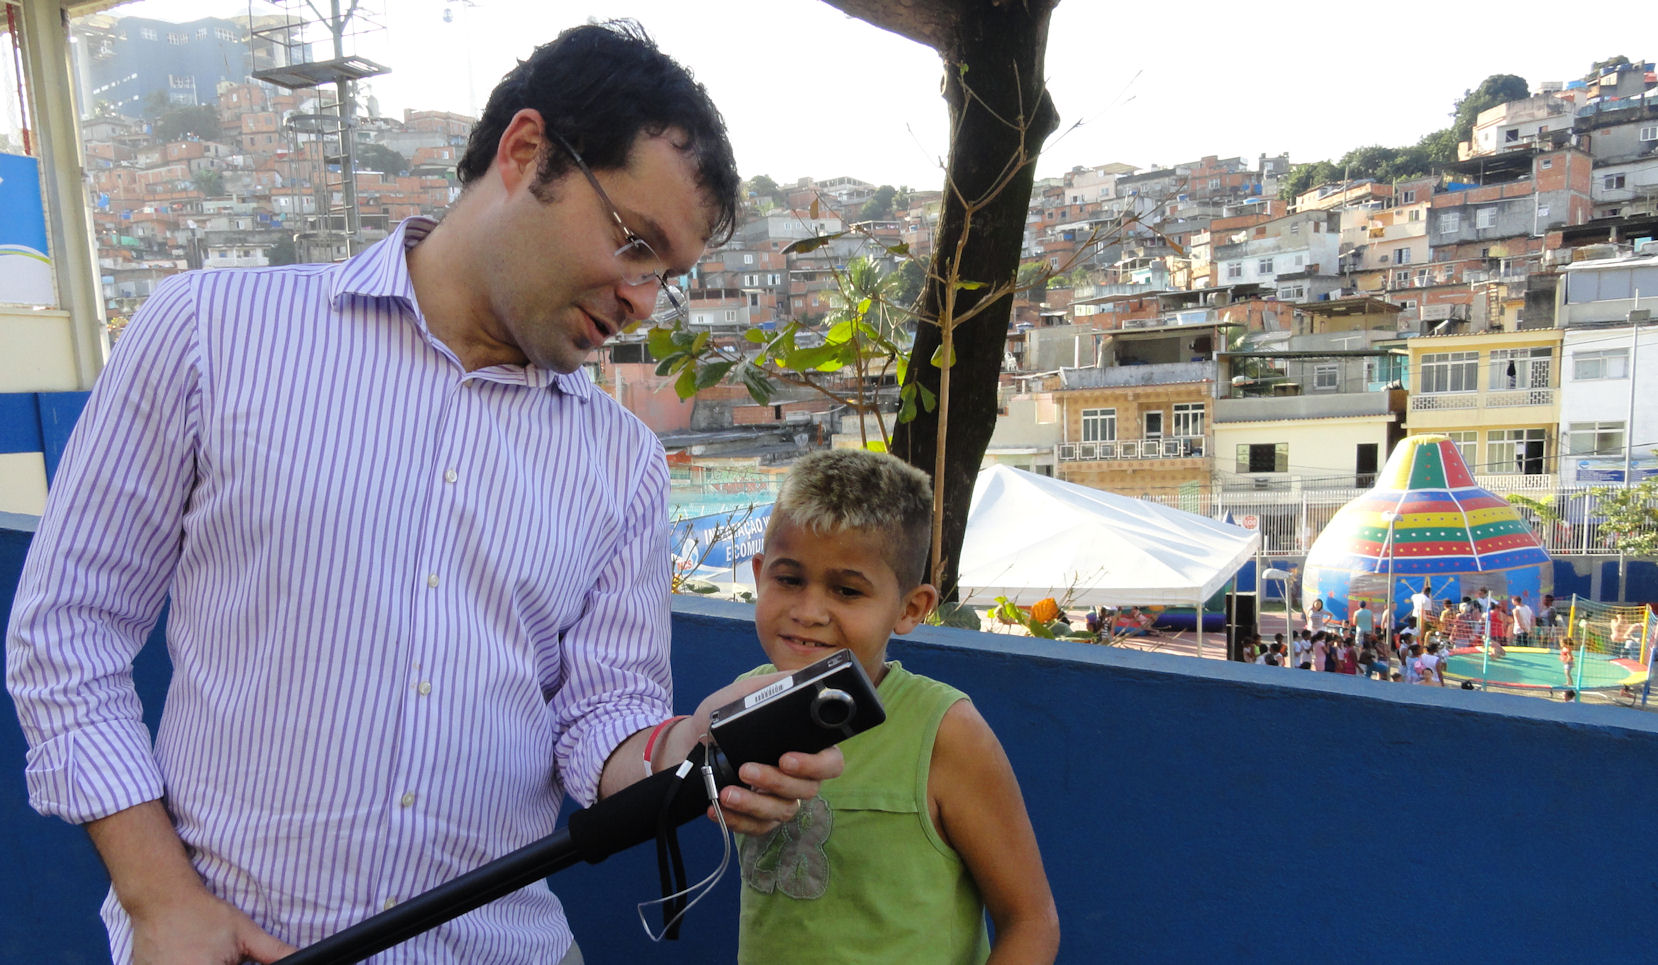 showing the kid in Rio how the little camera works